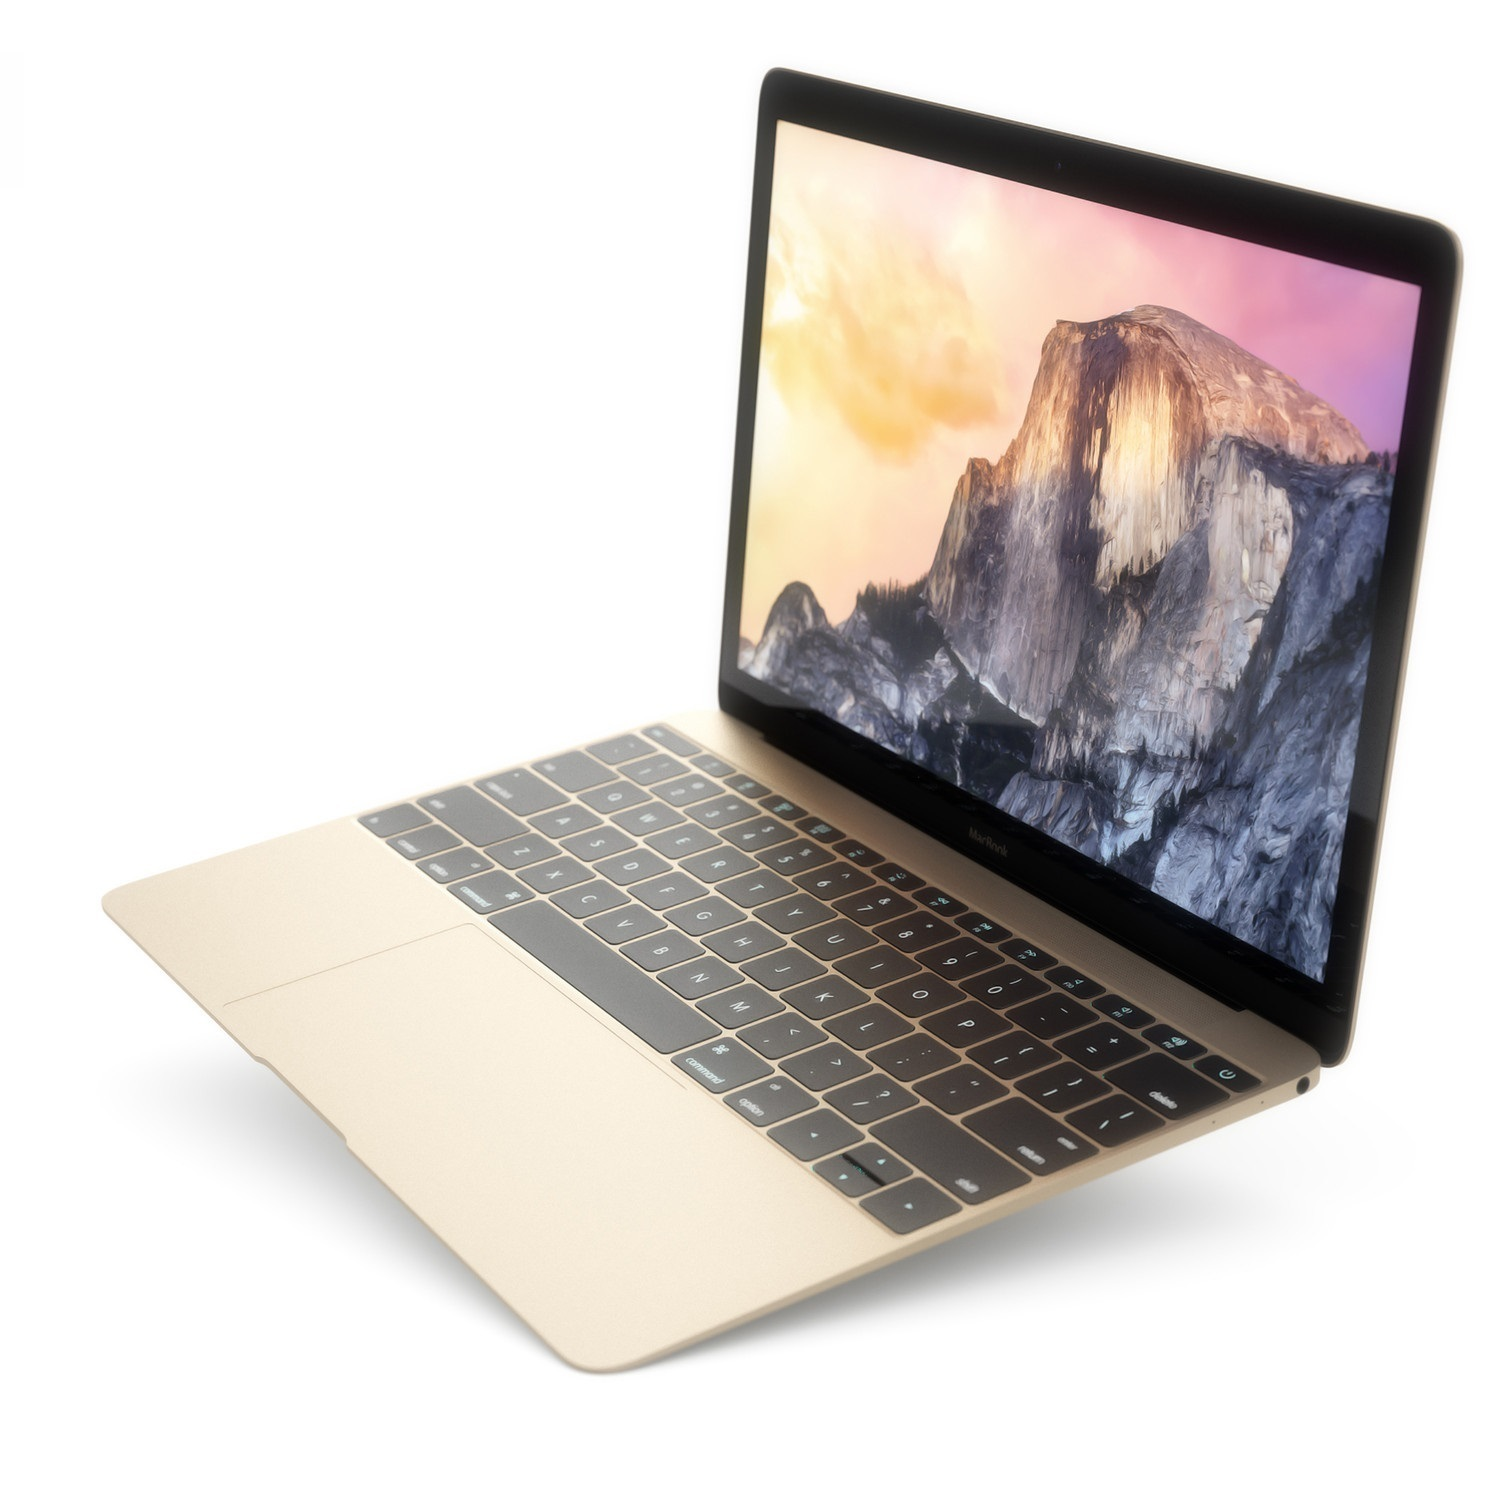 GOLD Retina MK4N2 - Early 2015